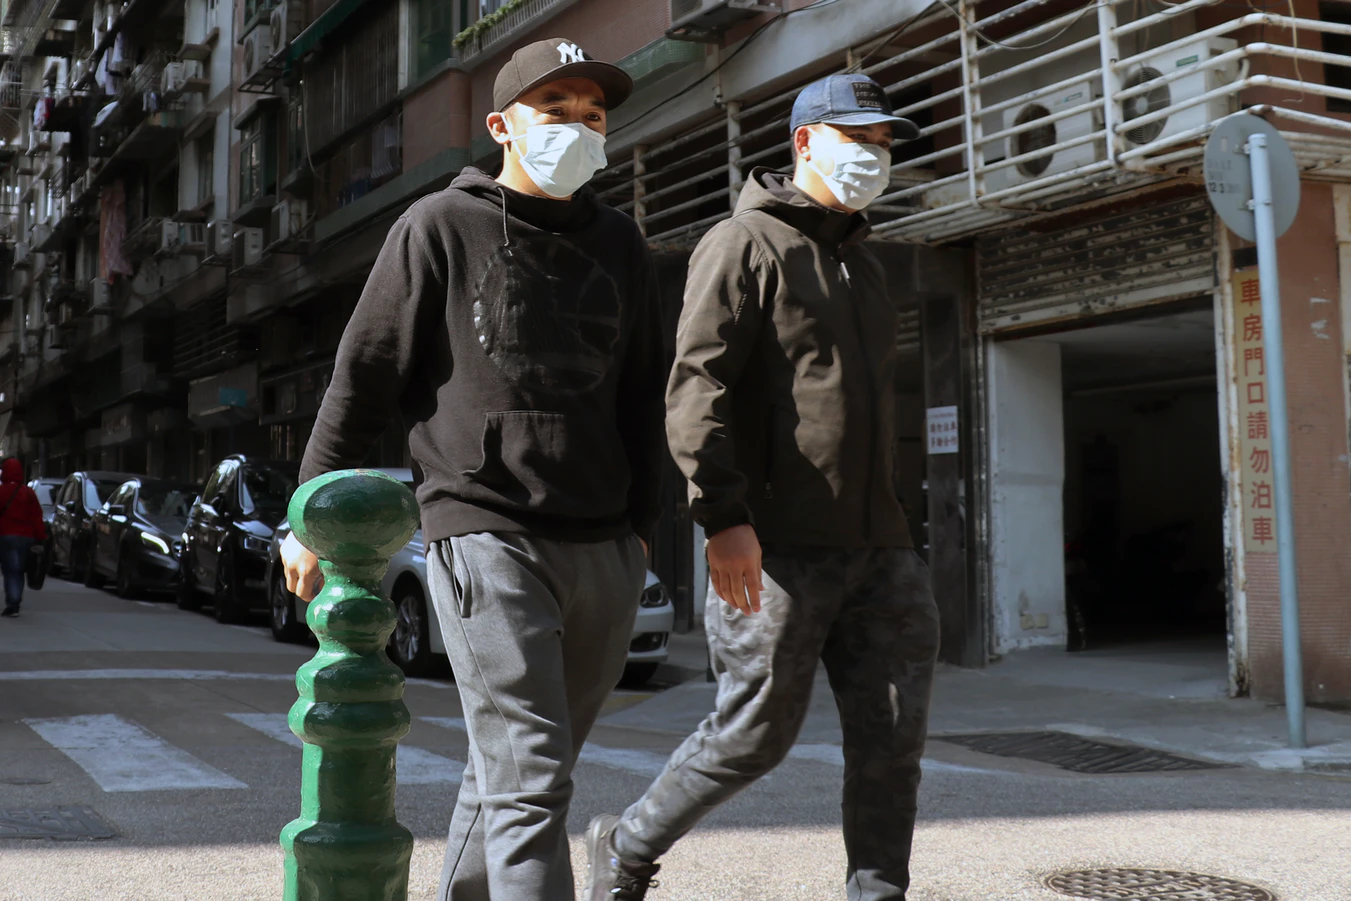 Two people wearing surgical masks